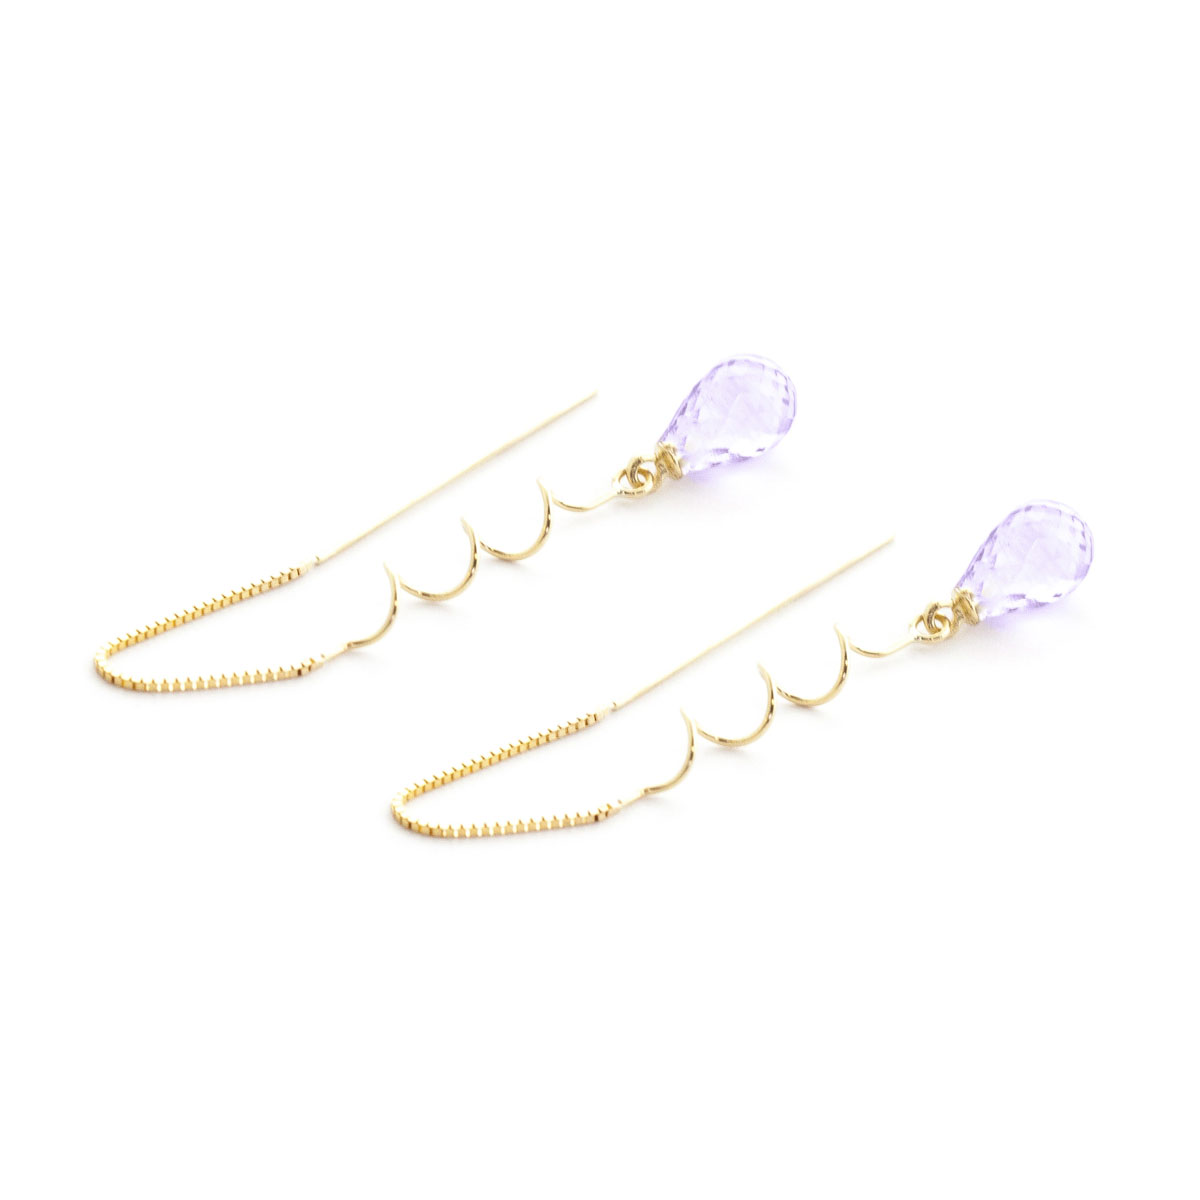 Amethyst Spiral Scintilla Earrings 3.3 ctw in 9ct Gold